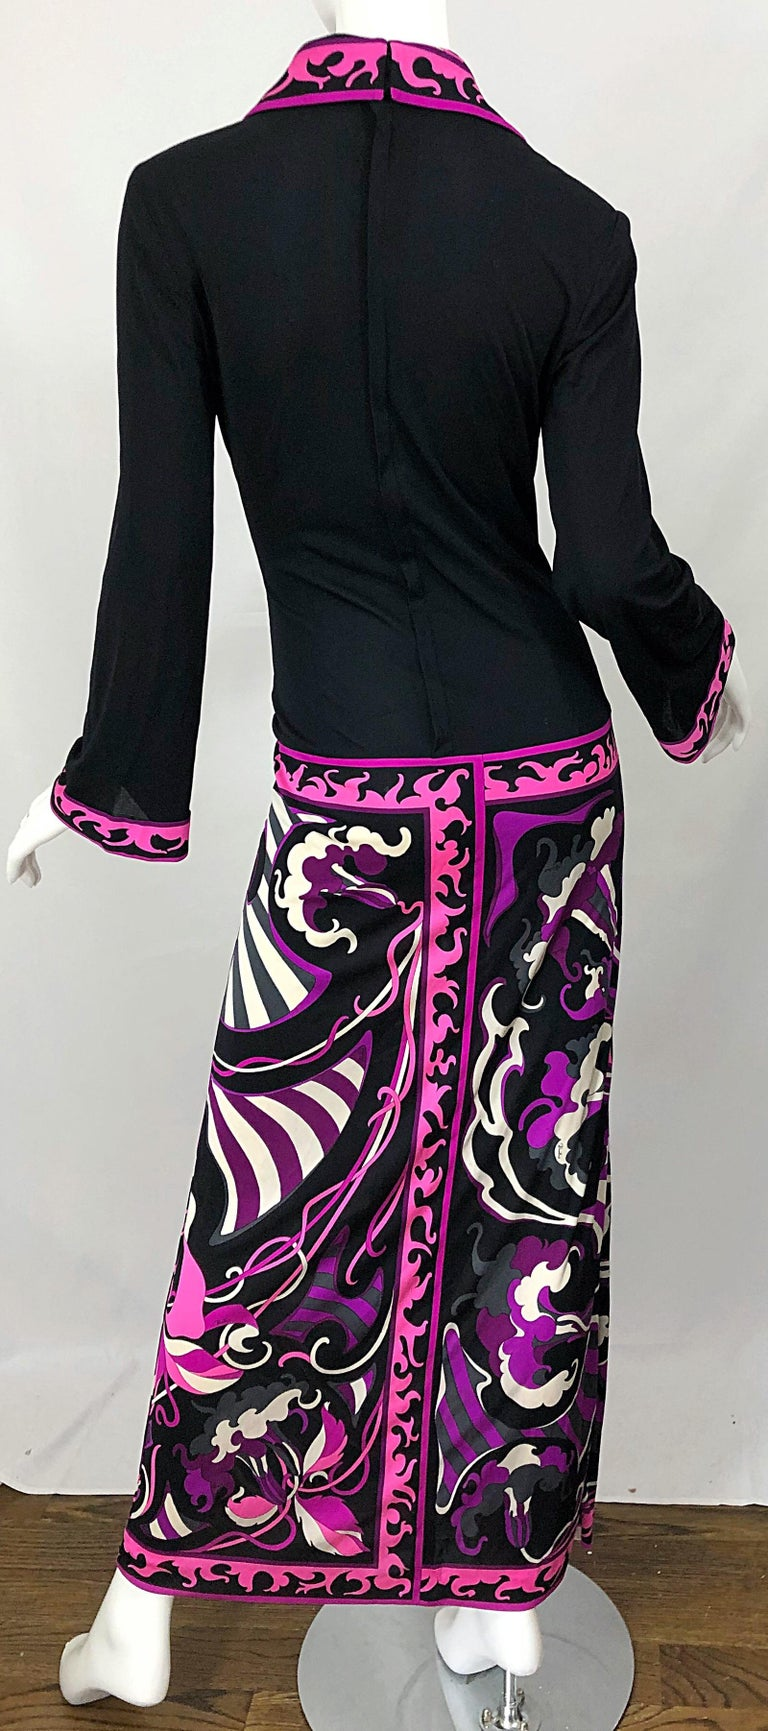 Emilio Pucci 1970s Silk Jersey Pink Purple Black Vintage 70s Maxi Dress For Sale 9